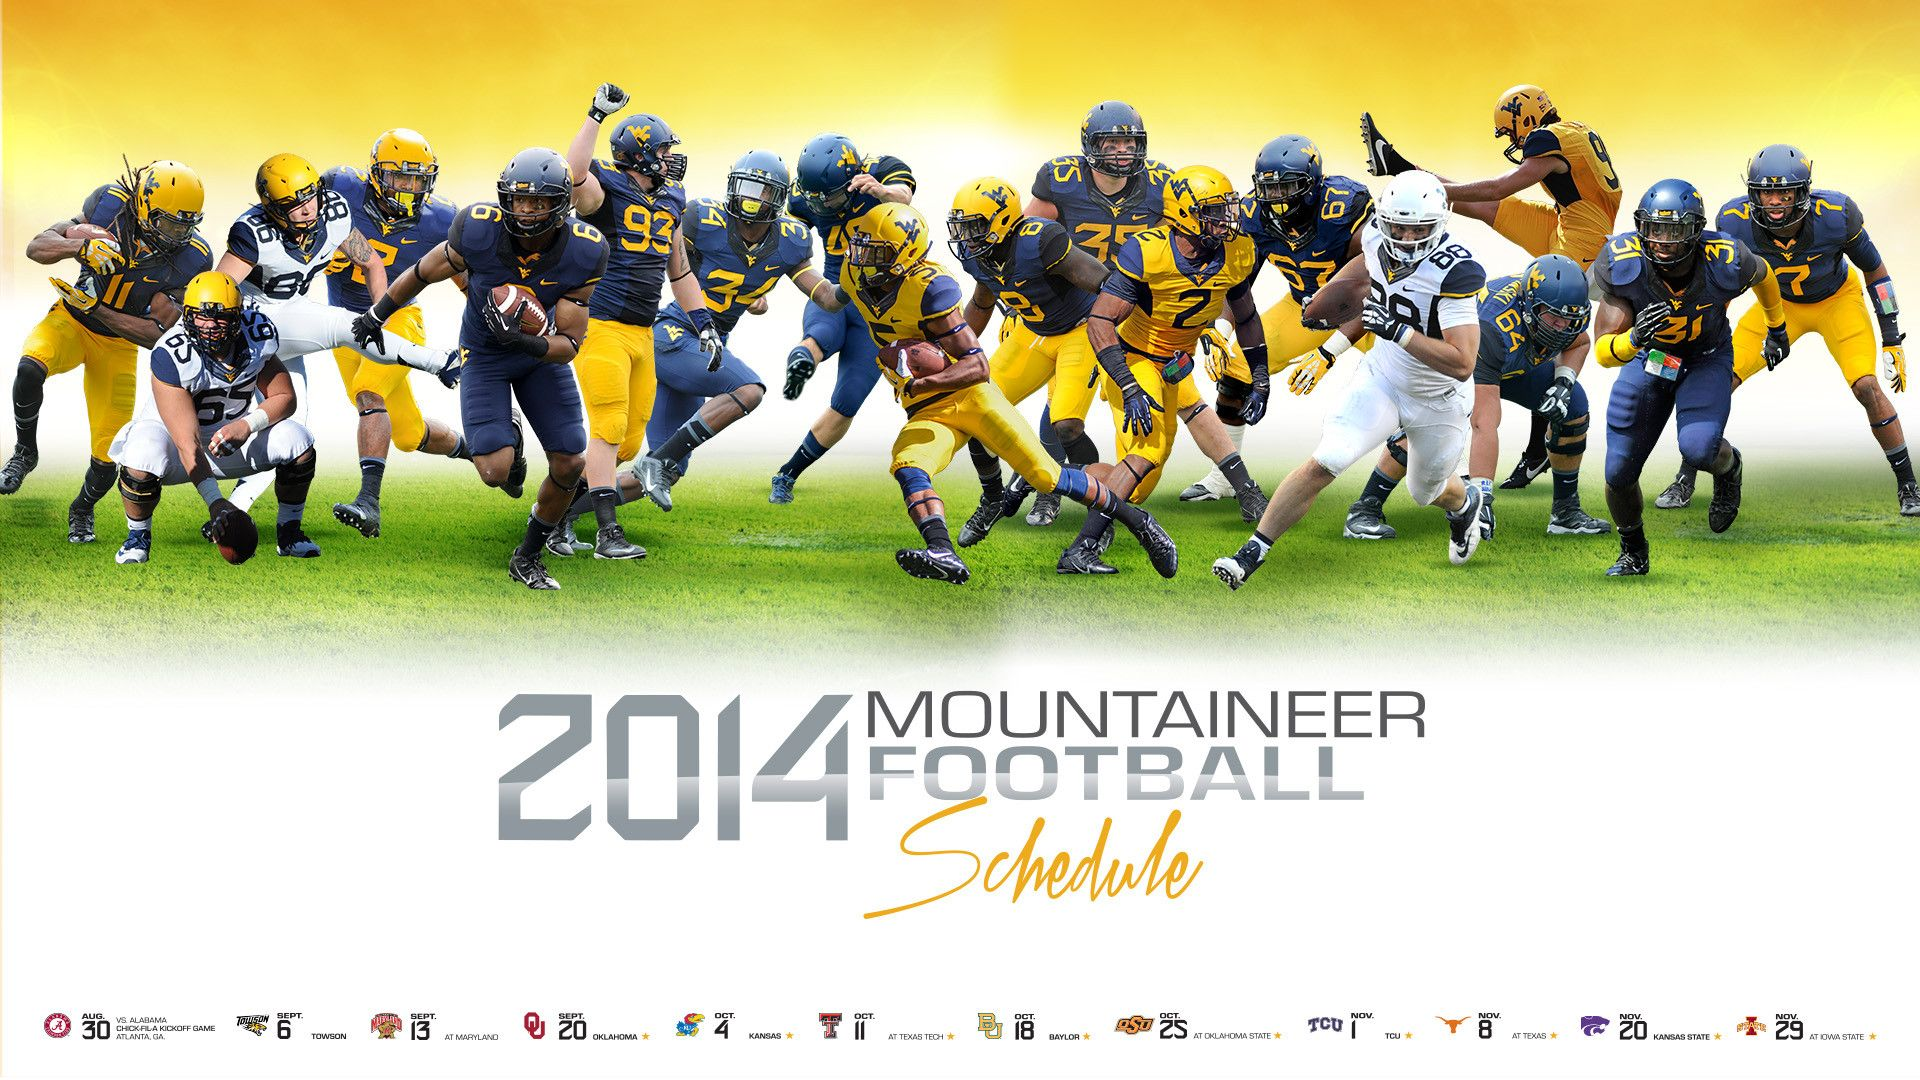 (1920×1080) 2014 WVU football schedule graphic for Desktop